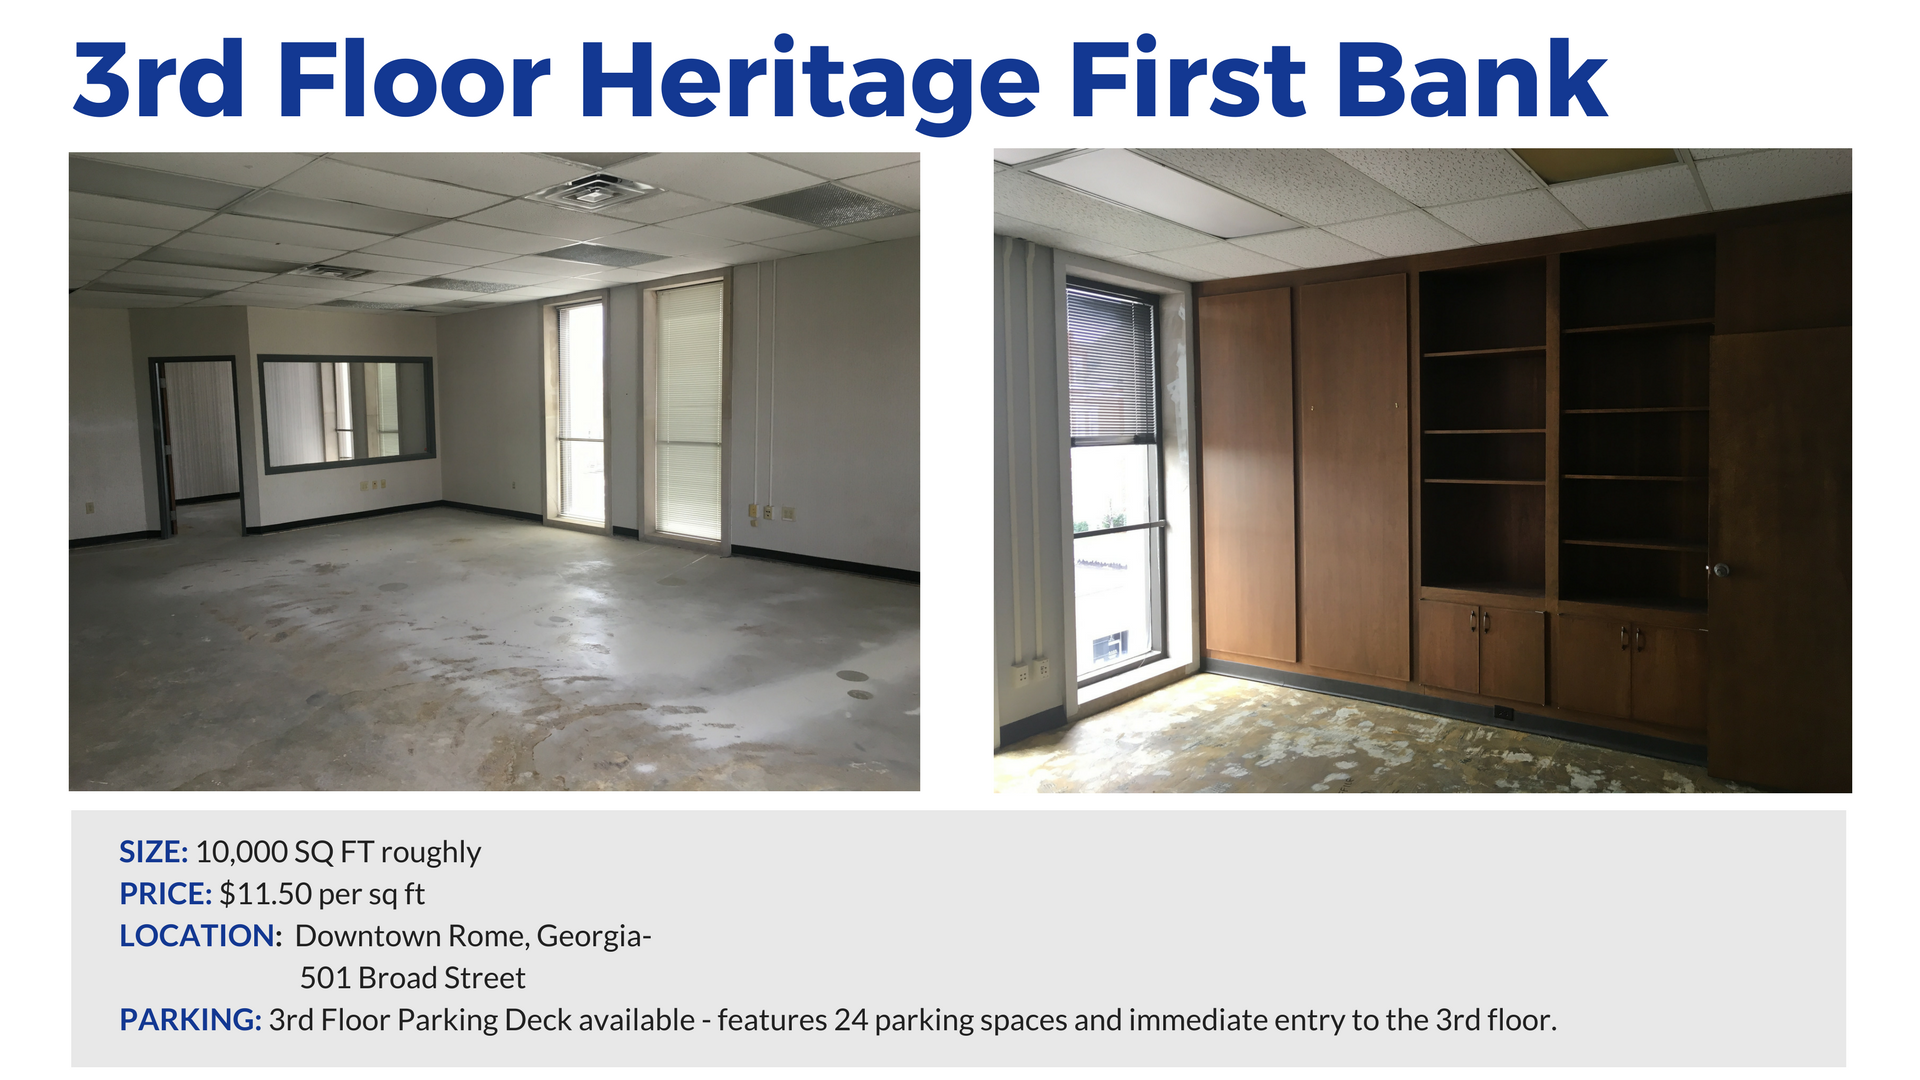 Heritage First Bank Rome, GEORGIA Commercial Building office space Floyd County